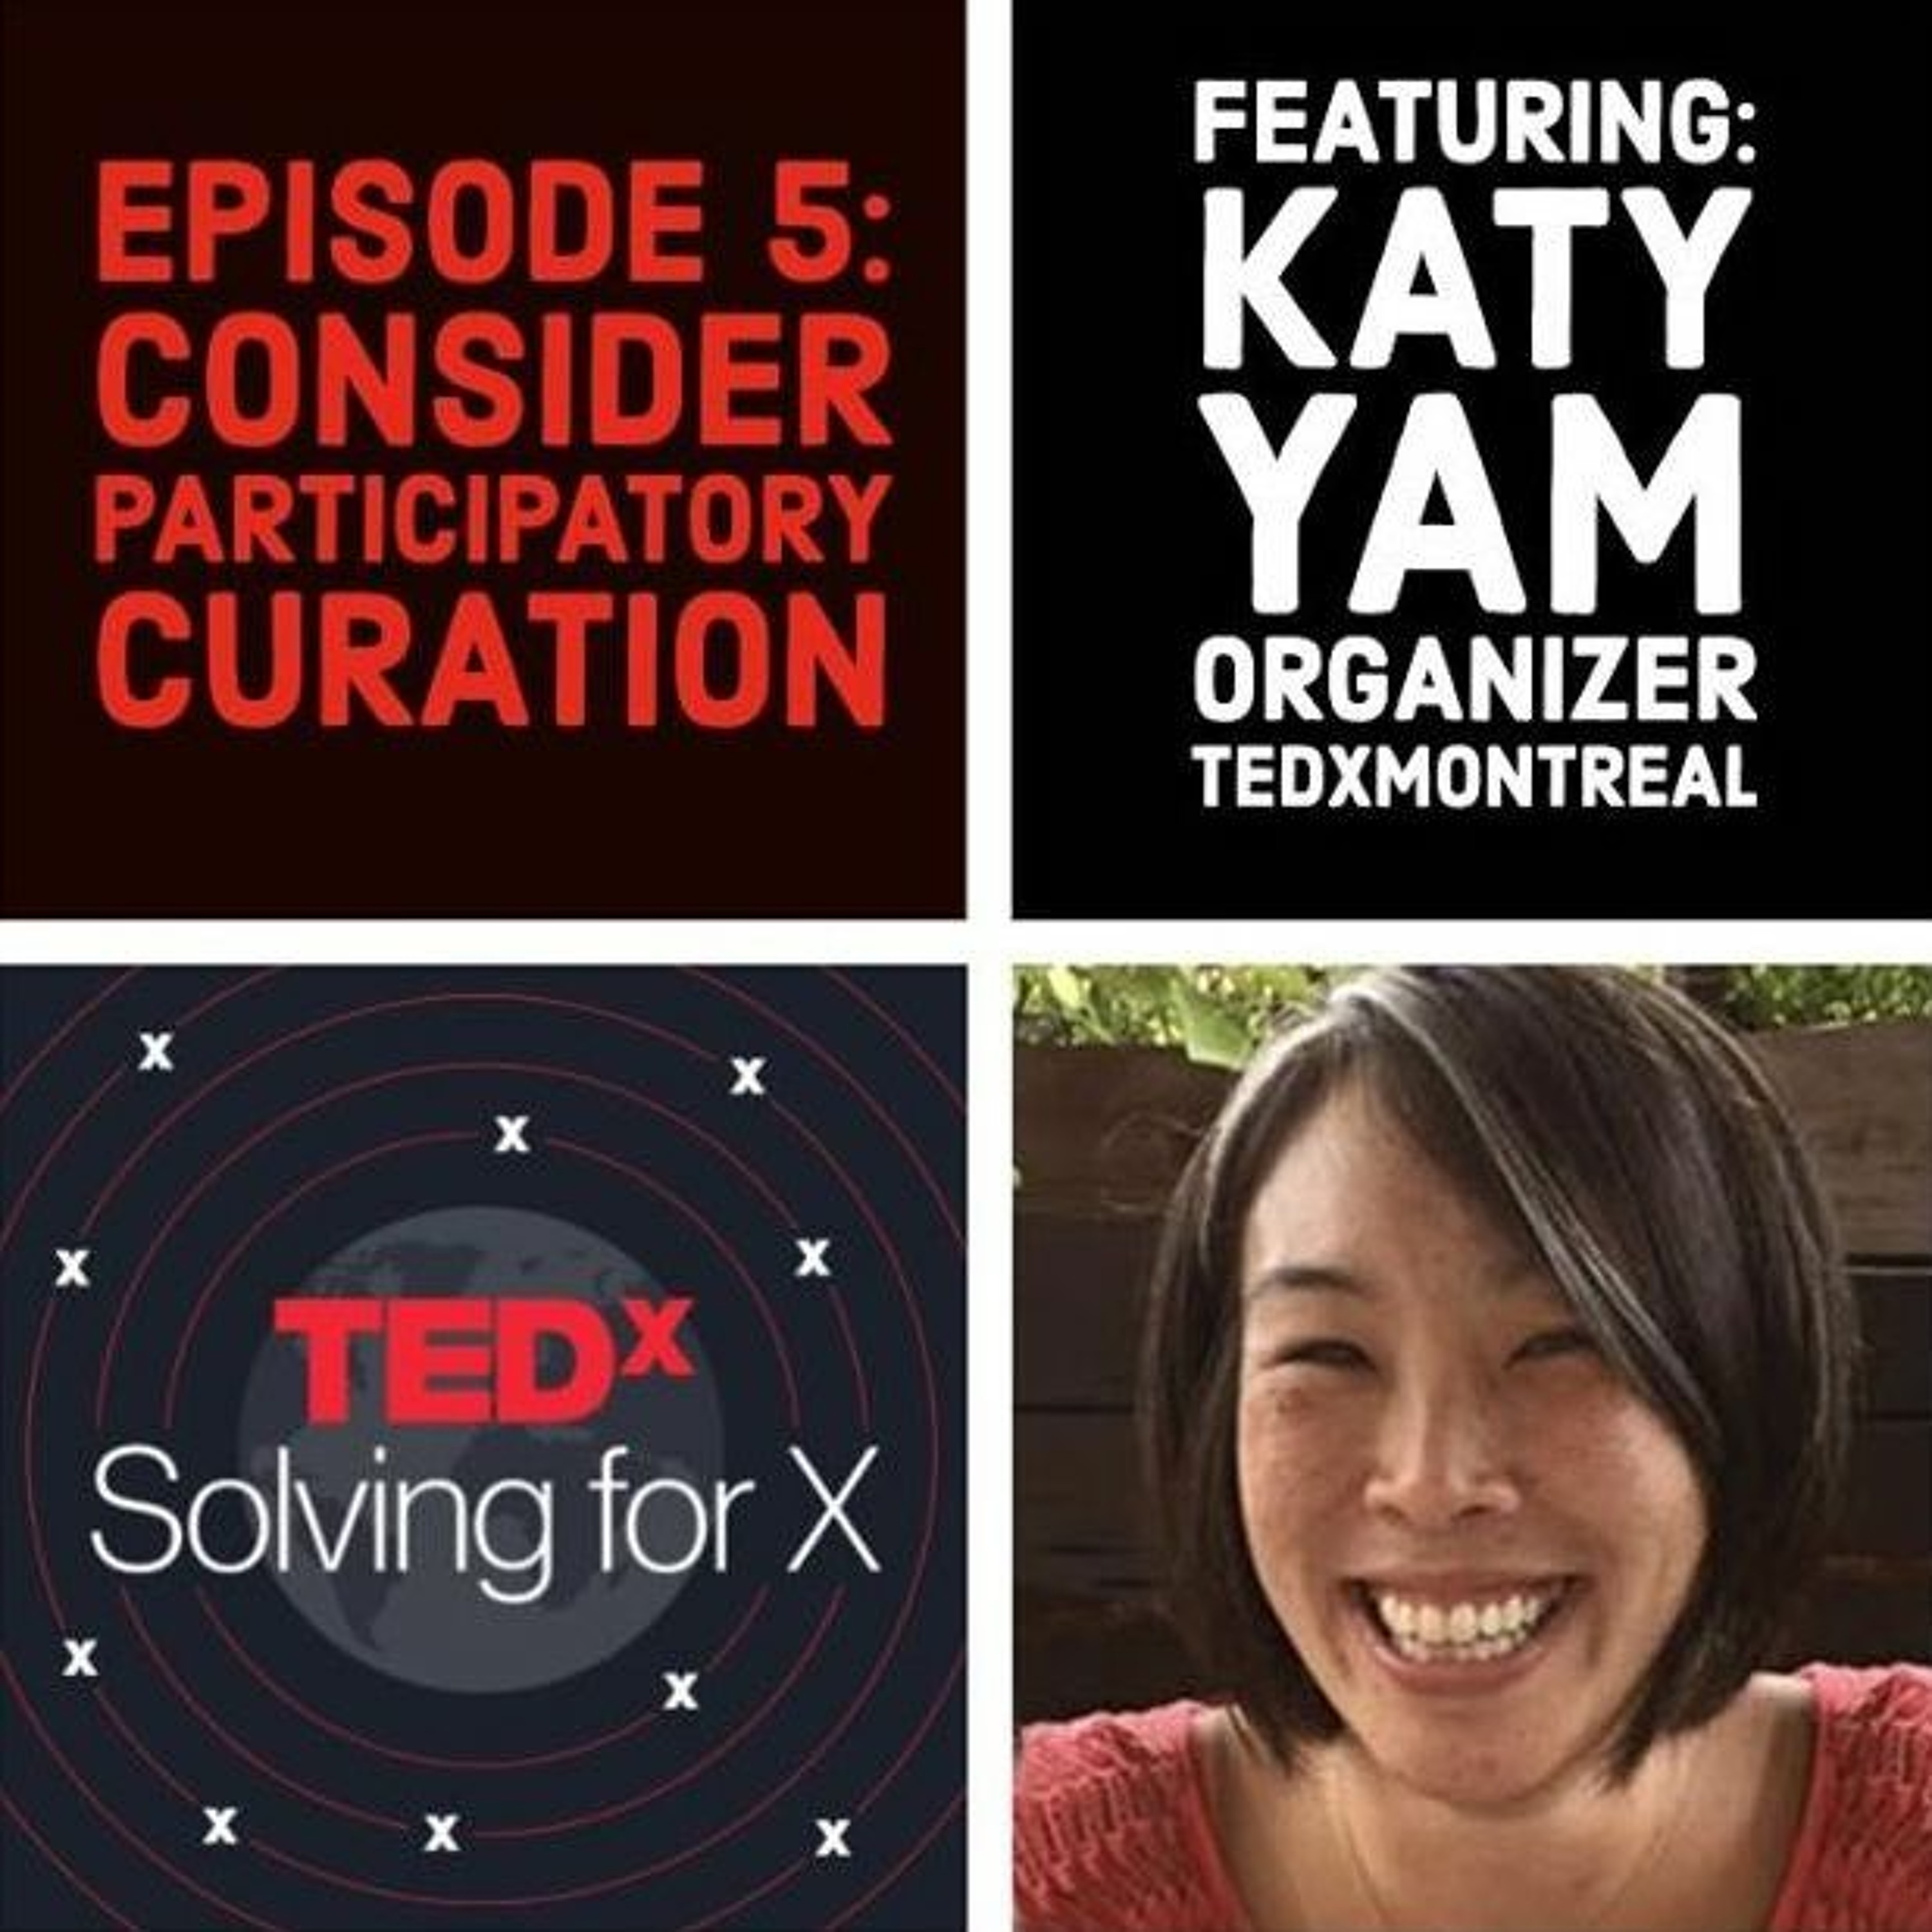 Consider participatory curation — Katy Yam, TEDxMontreal